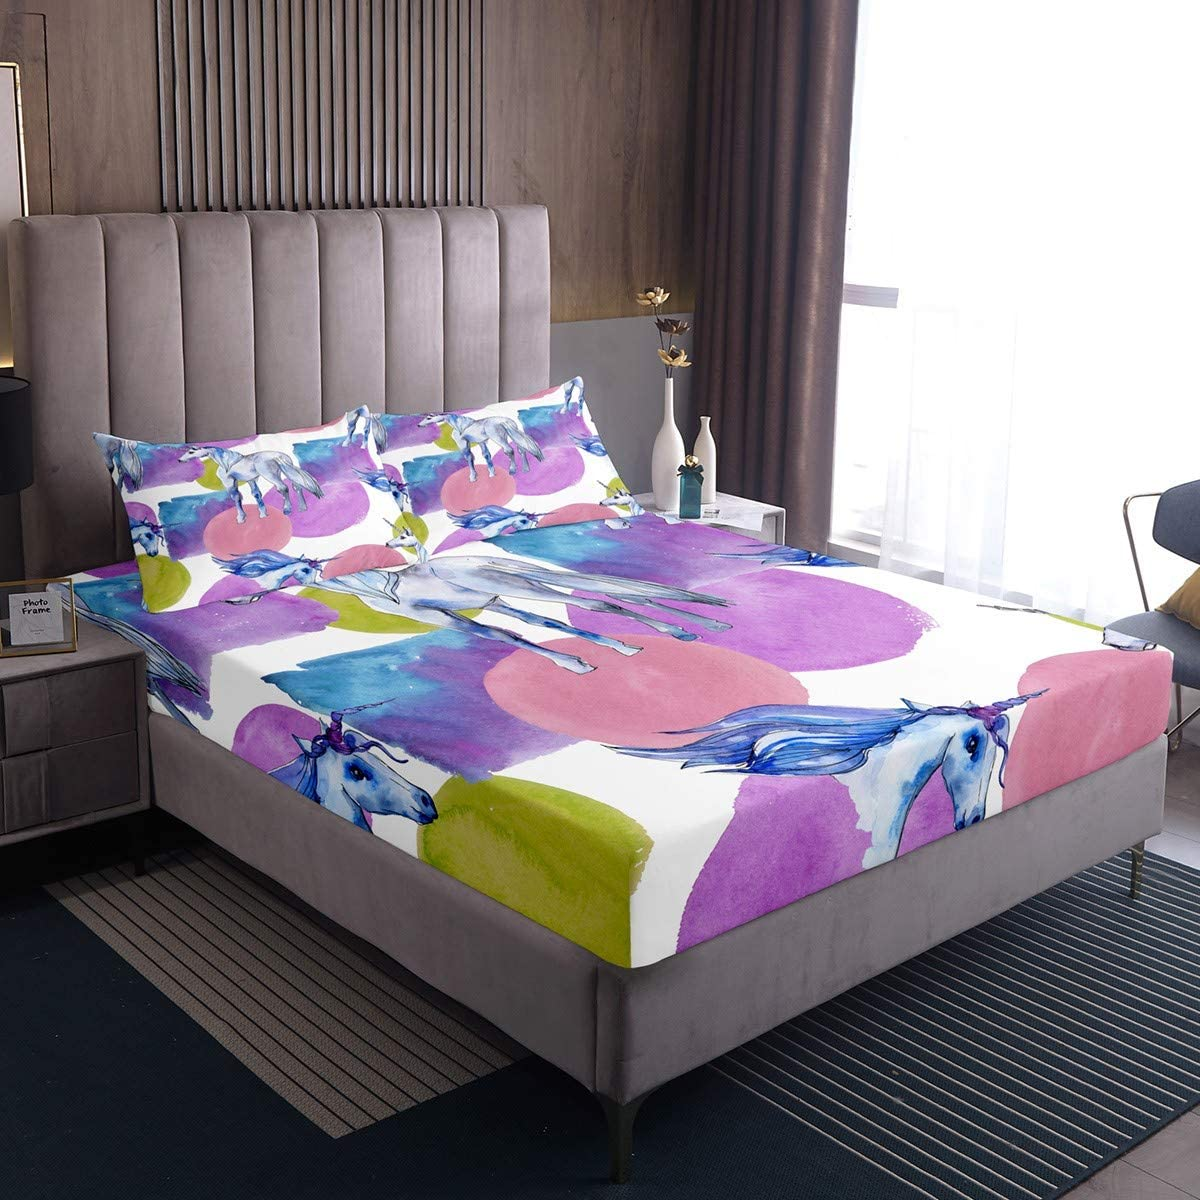 Colored Round Pattern Phoenix Mall White Horse Fitted Bedding Al sold out. Kids for Sheet